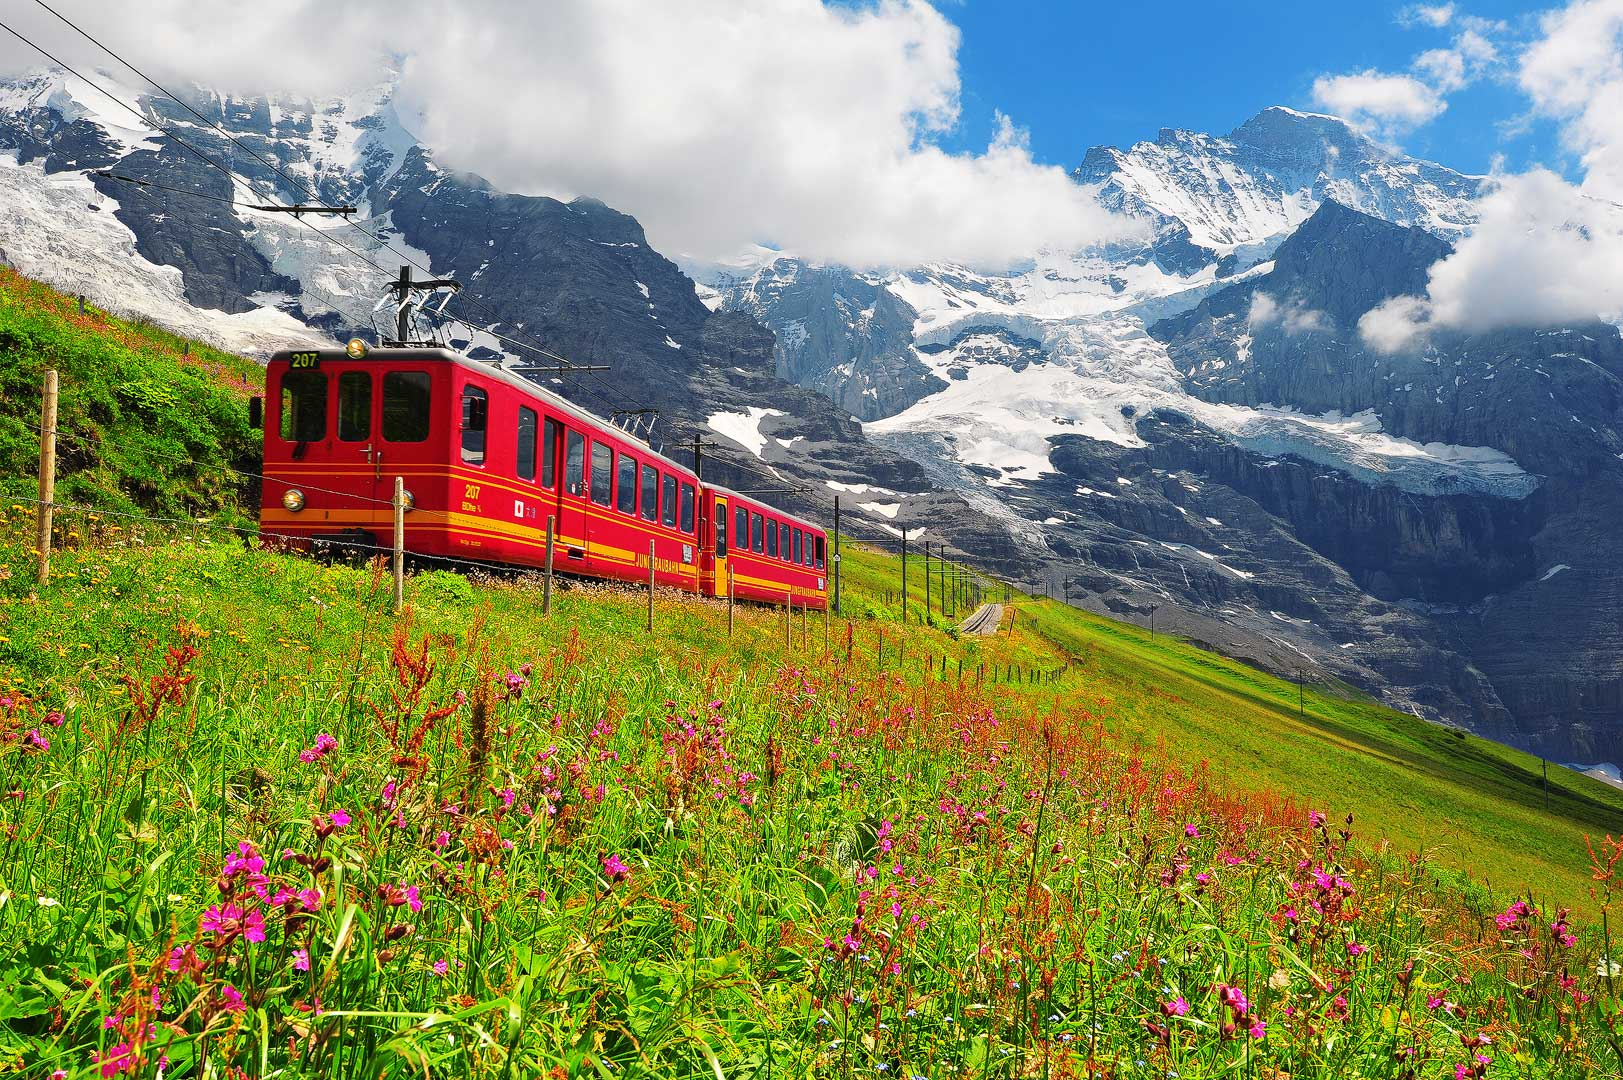 Life So Beautiful, The Alps of Switzerland, swiss alps, mountains, clouds, peak, snow, summer, train, eiger, jungfrau, mittaghorn, monch, flowers, bernard chen, timescapes, photo